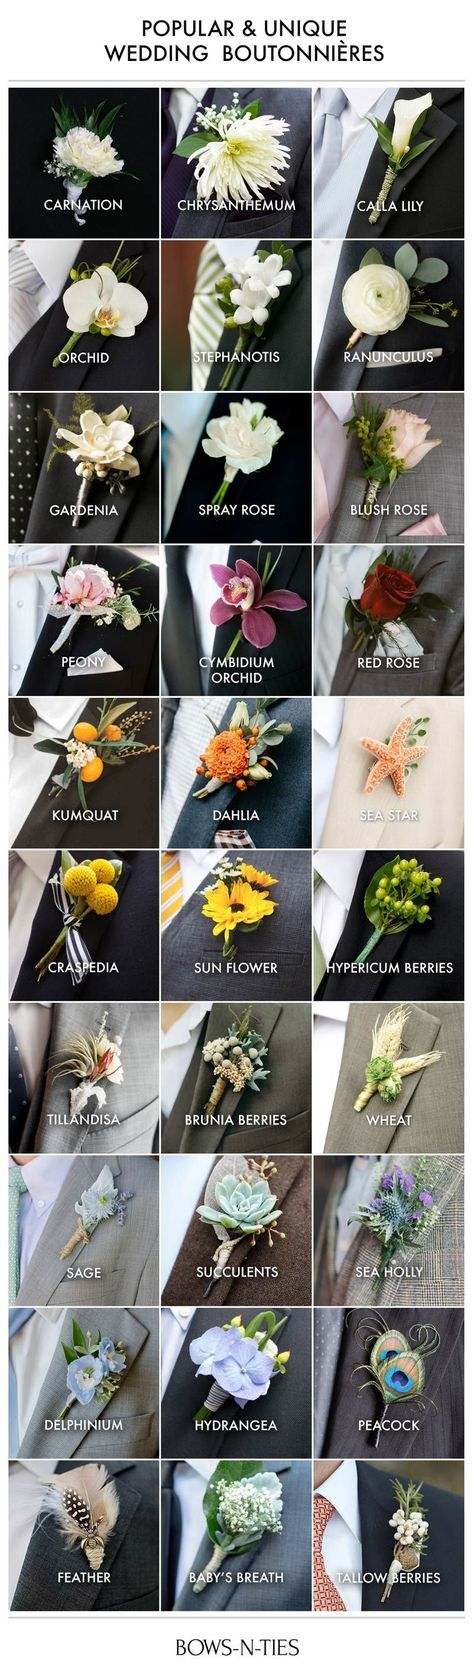 The BEST Groom's Boutonniere Guide